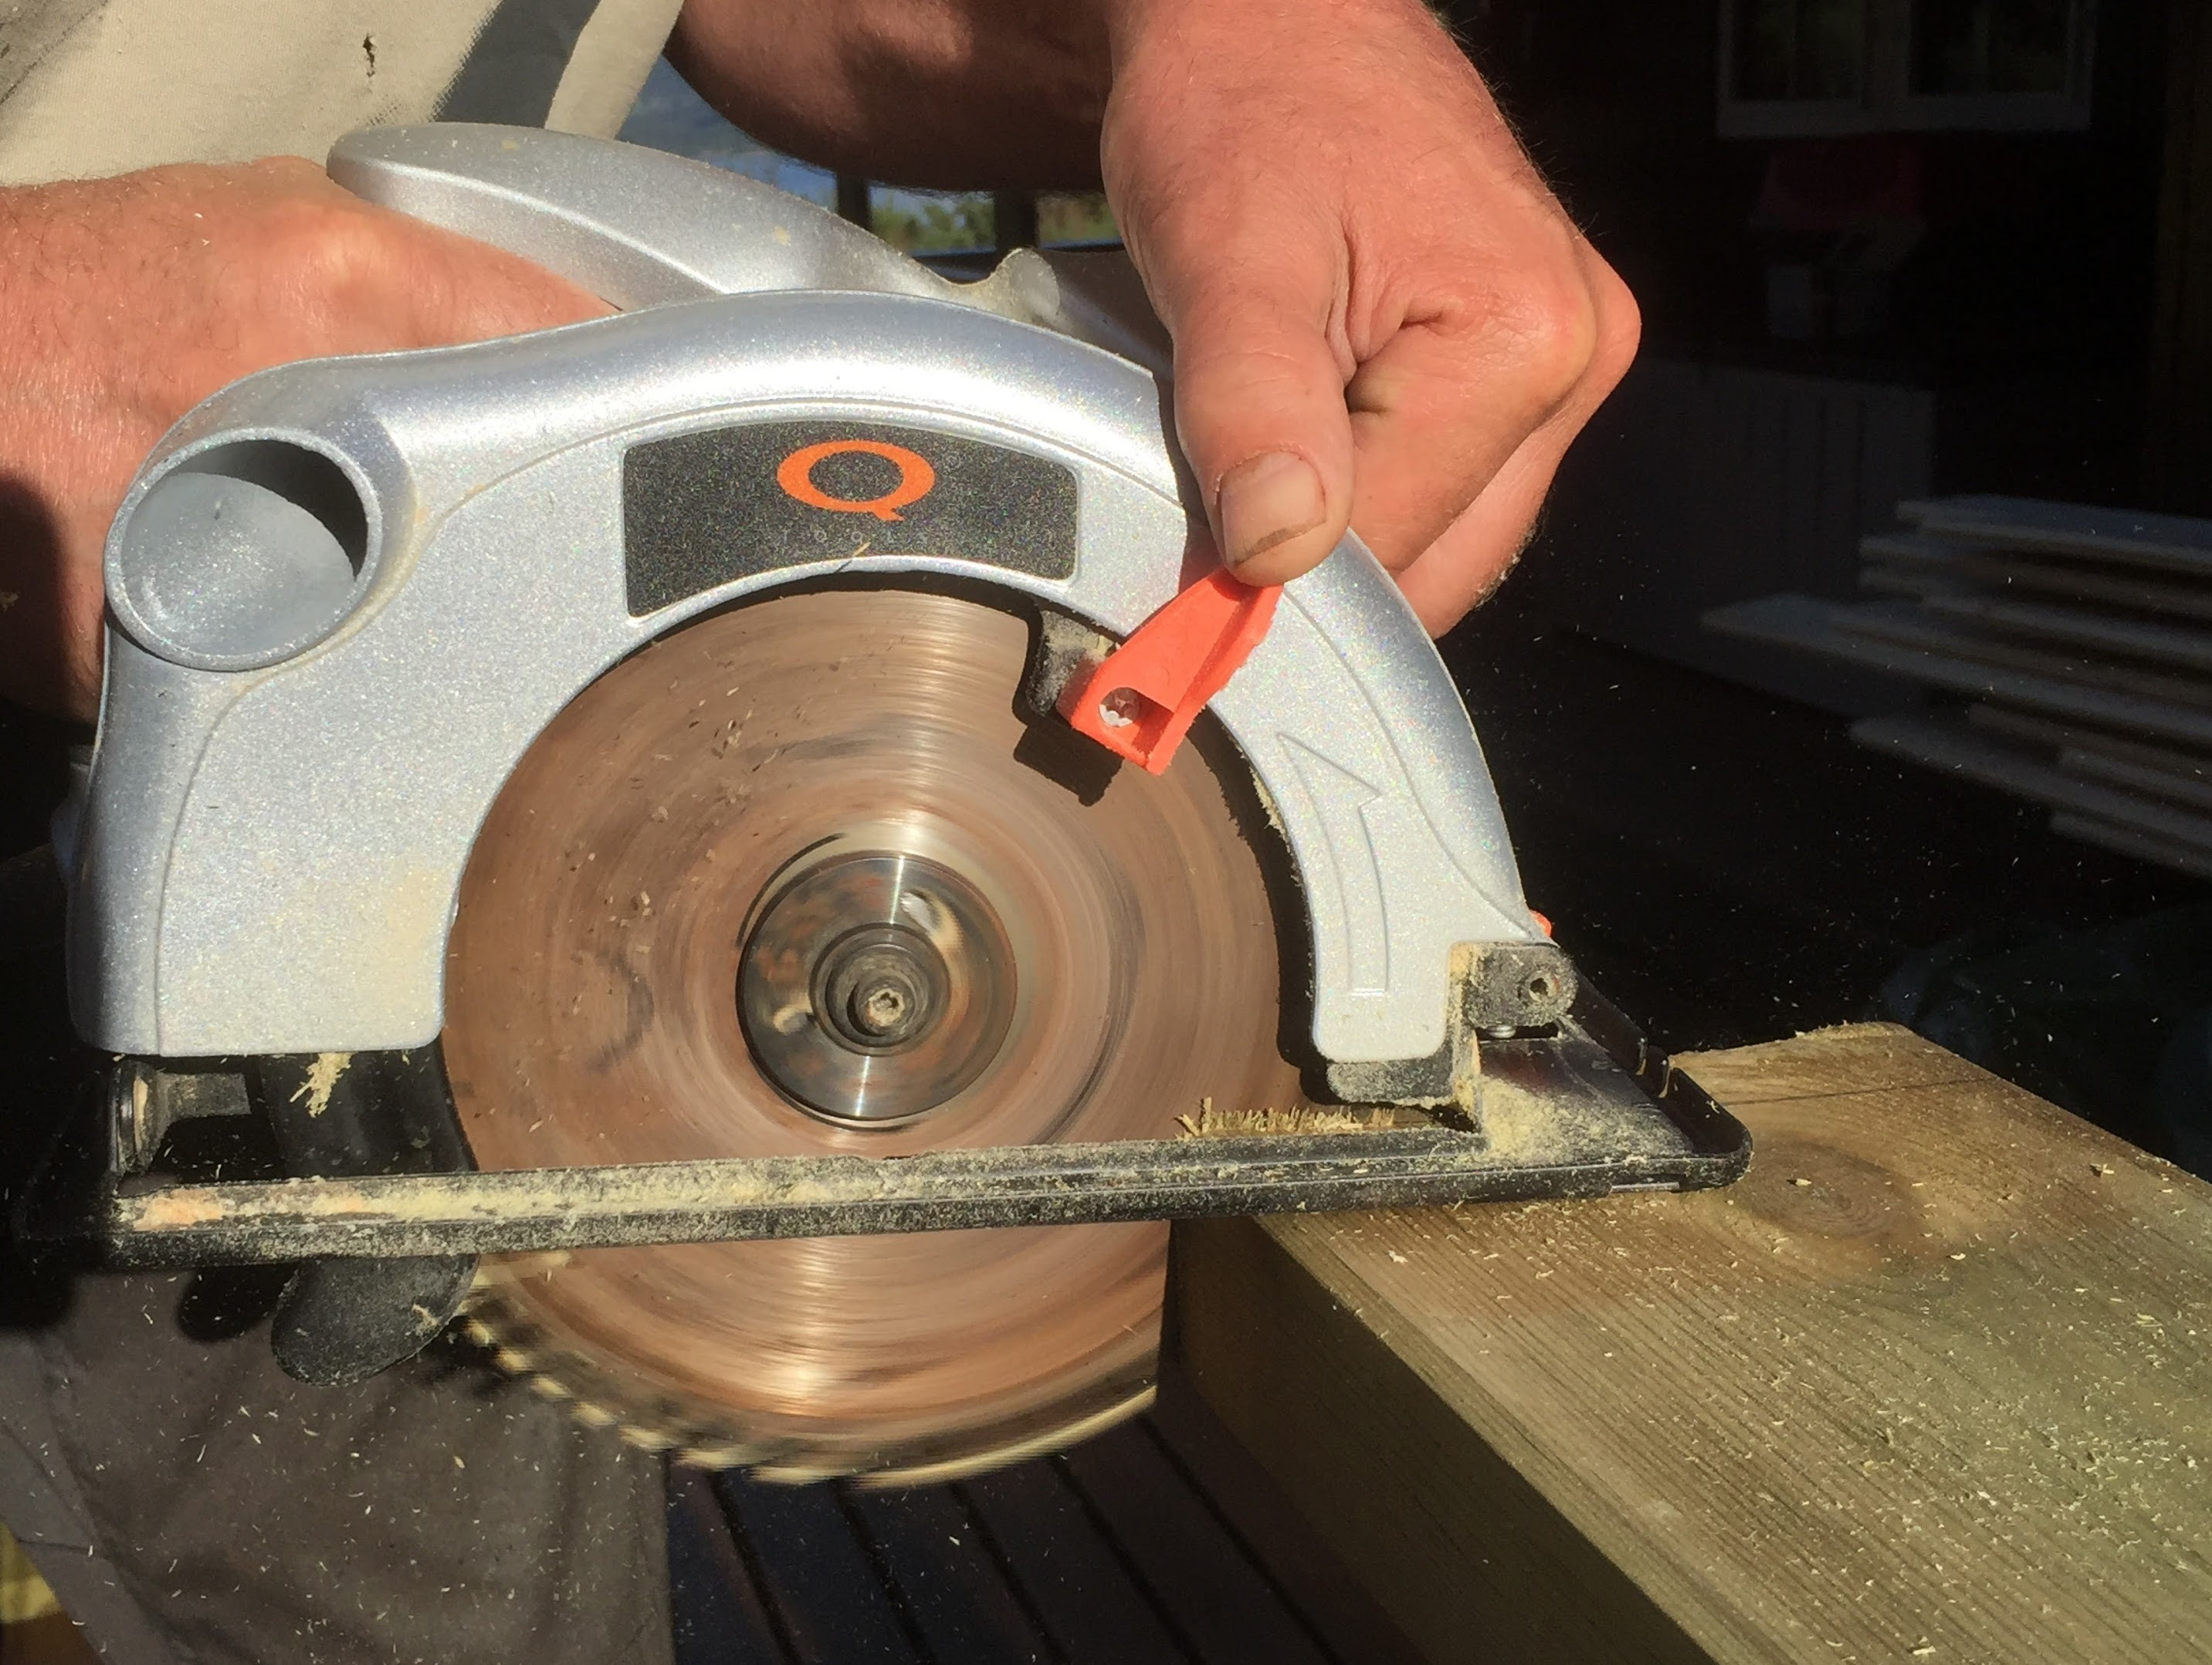 Saw with enclosed blade